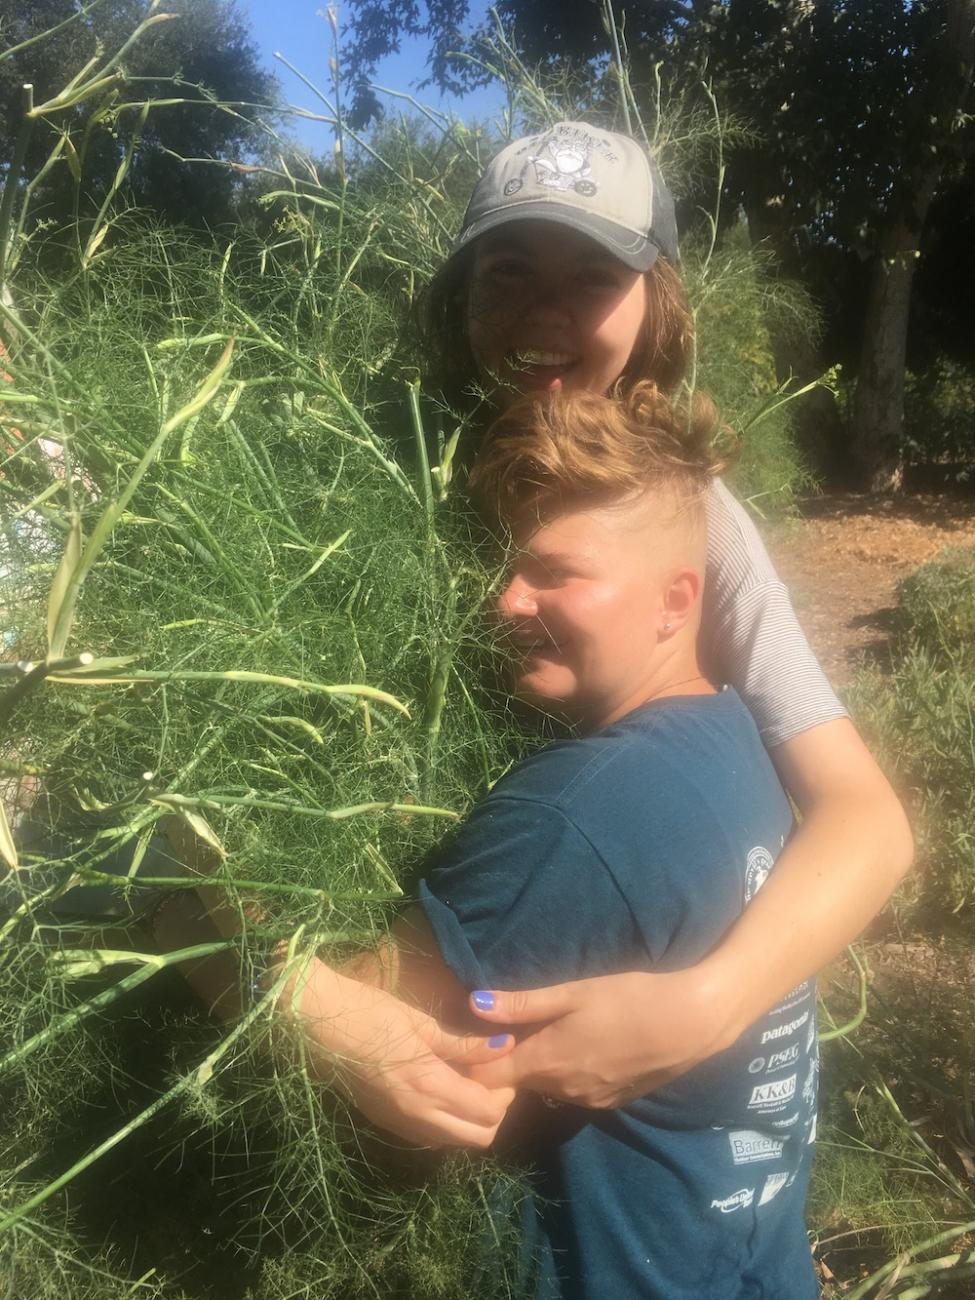 Two students hug a bundle of fennel cuttings